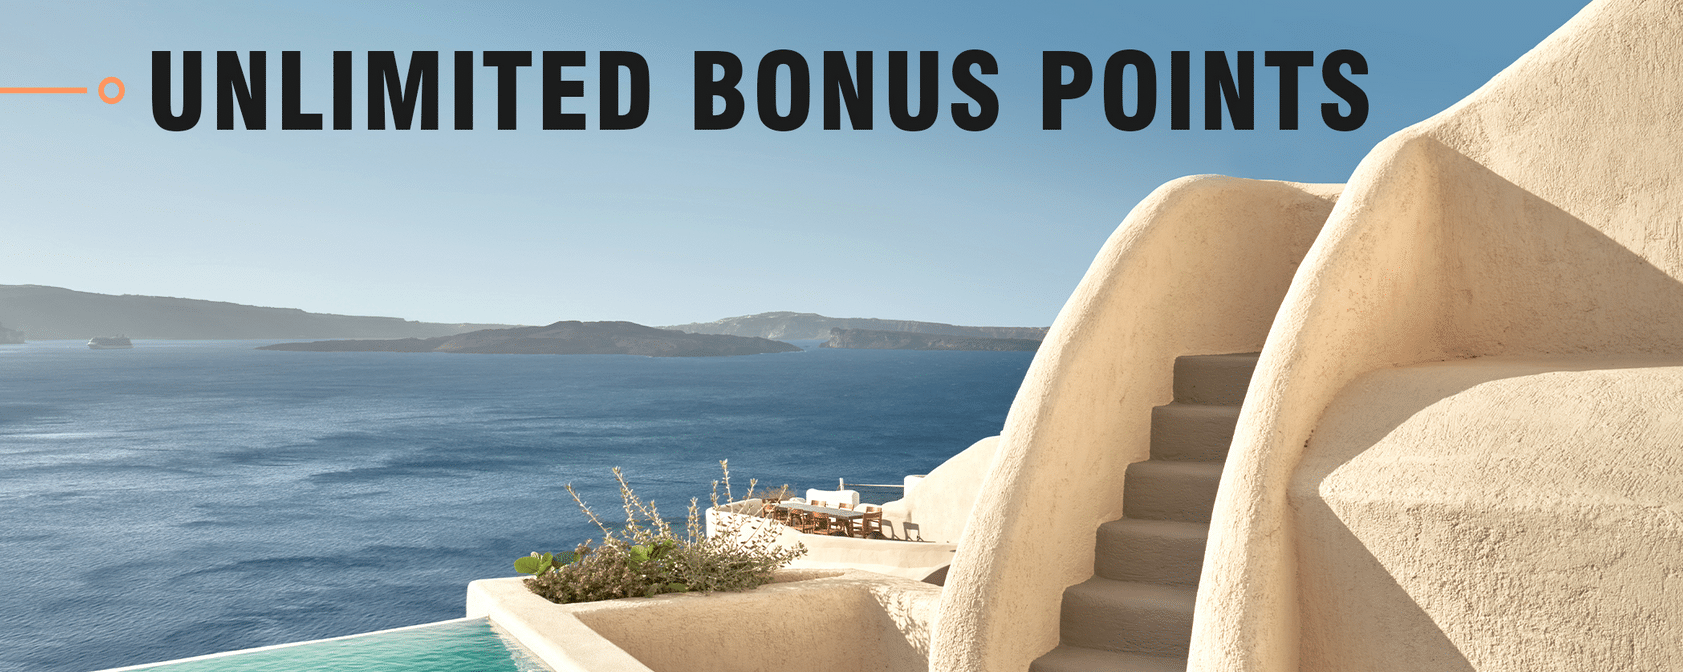 Marriott Promotion 2020 Elevated Earning